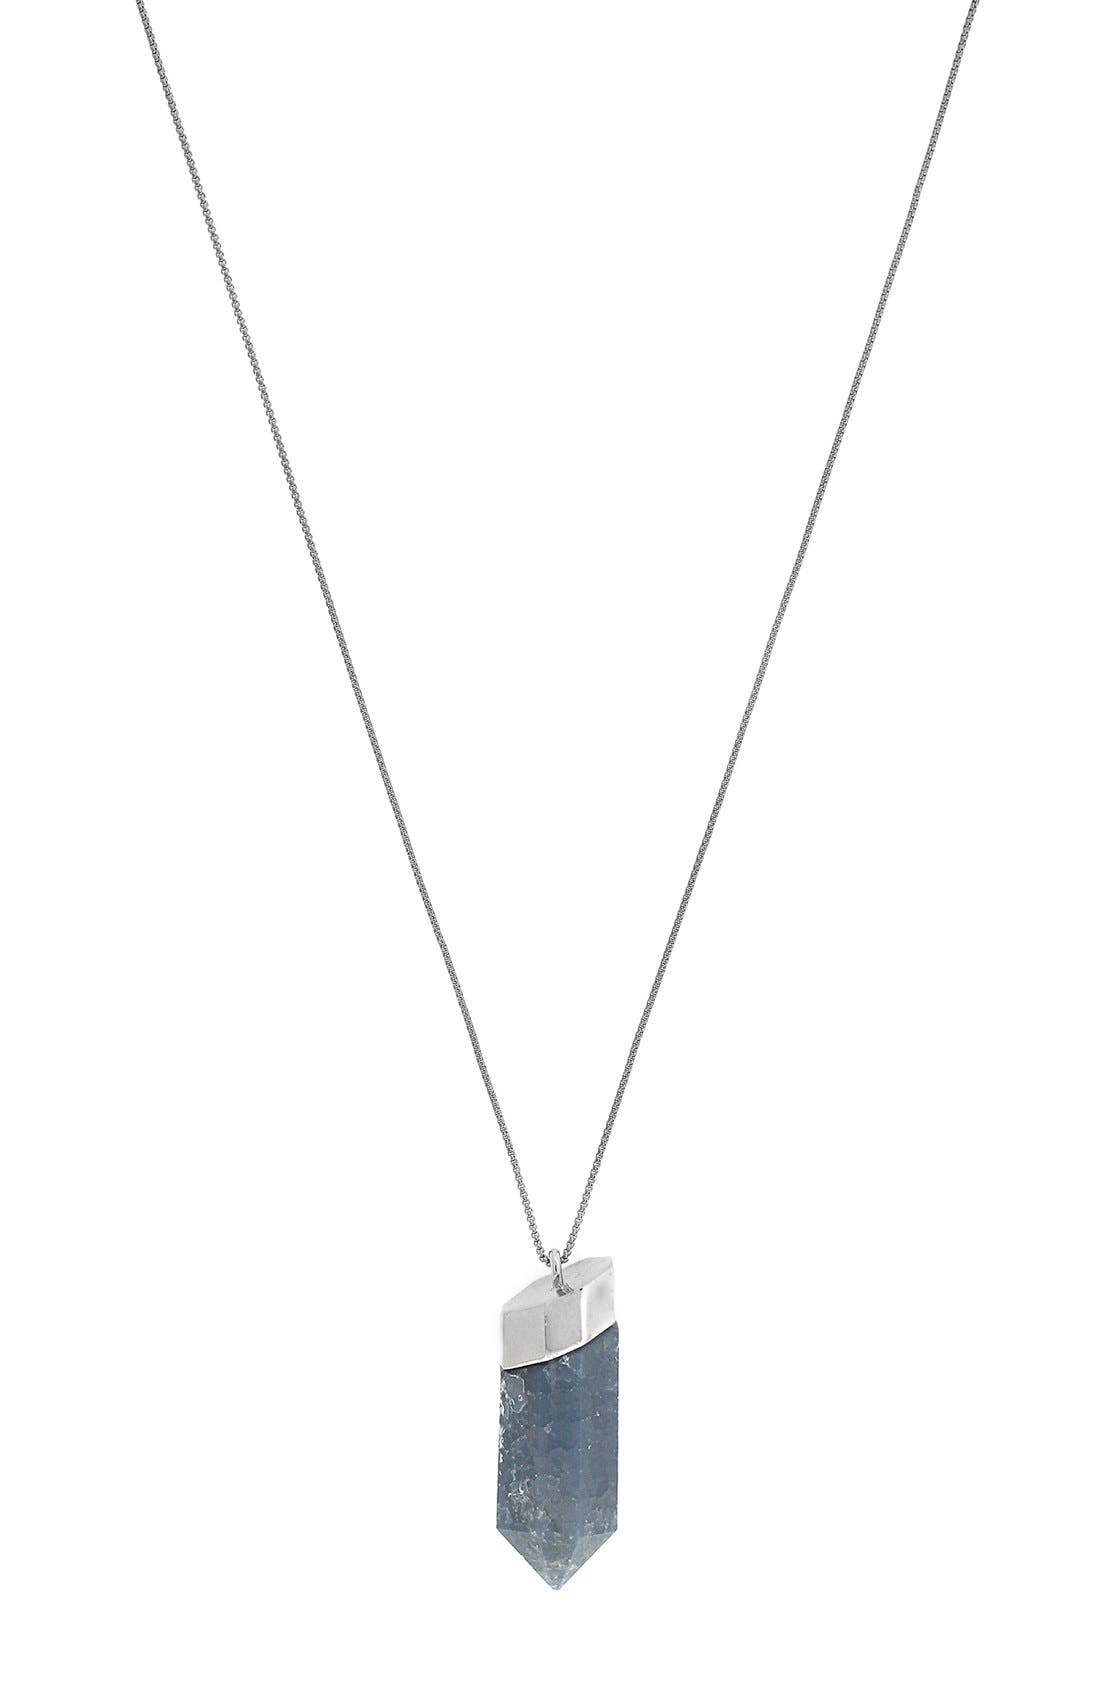 Alternate Image 1 Selected - Vince Camuto 'Shard' Pendant Necklace